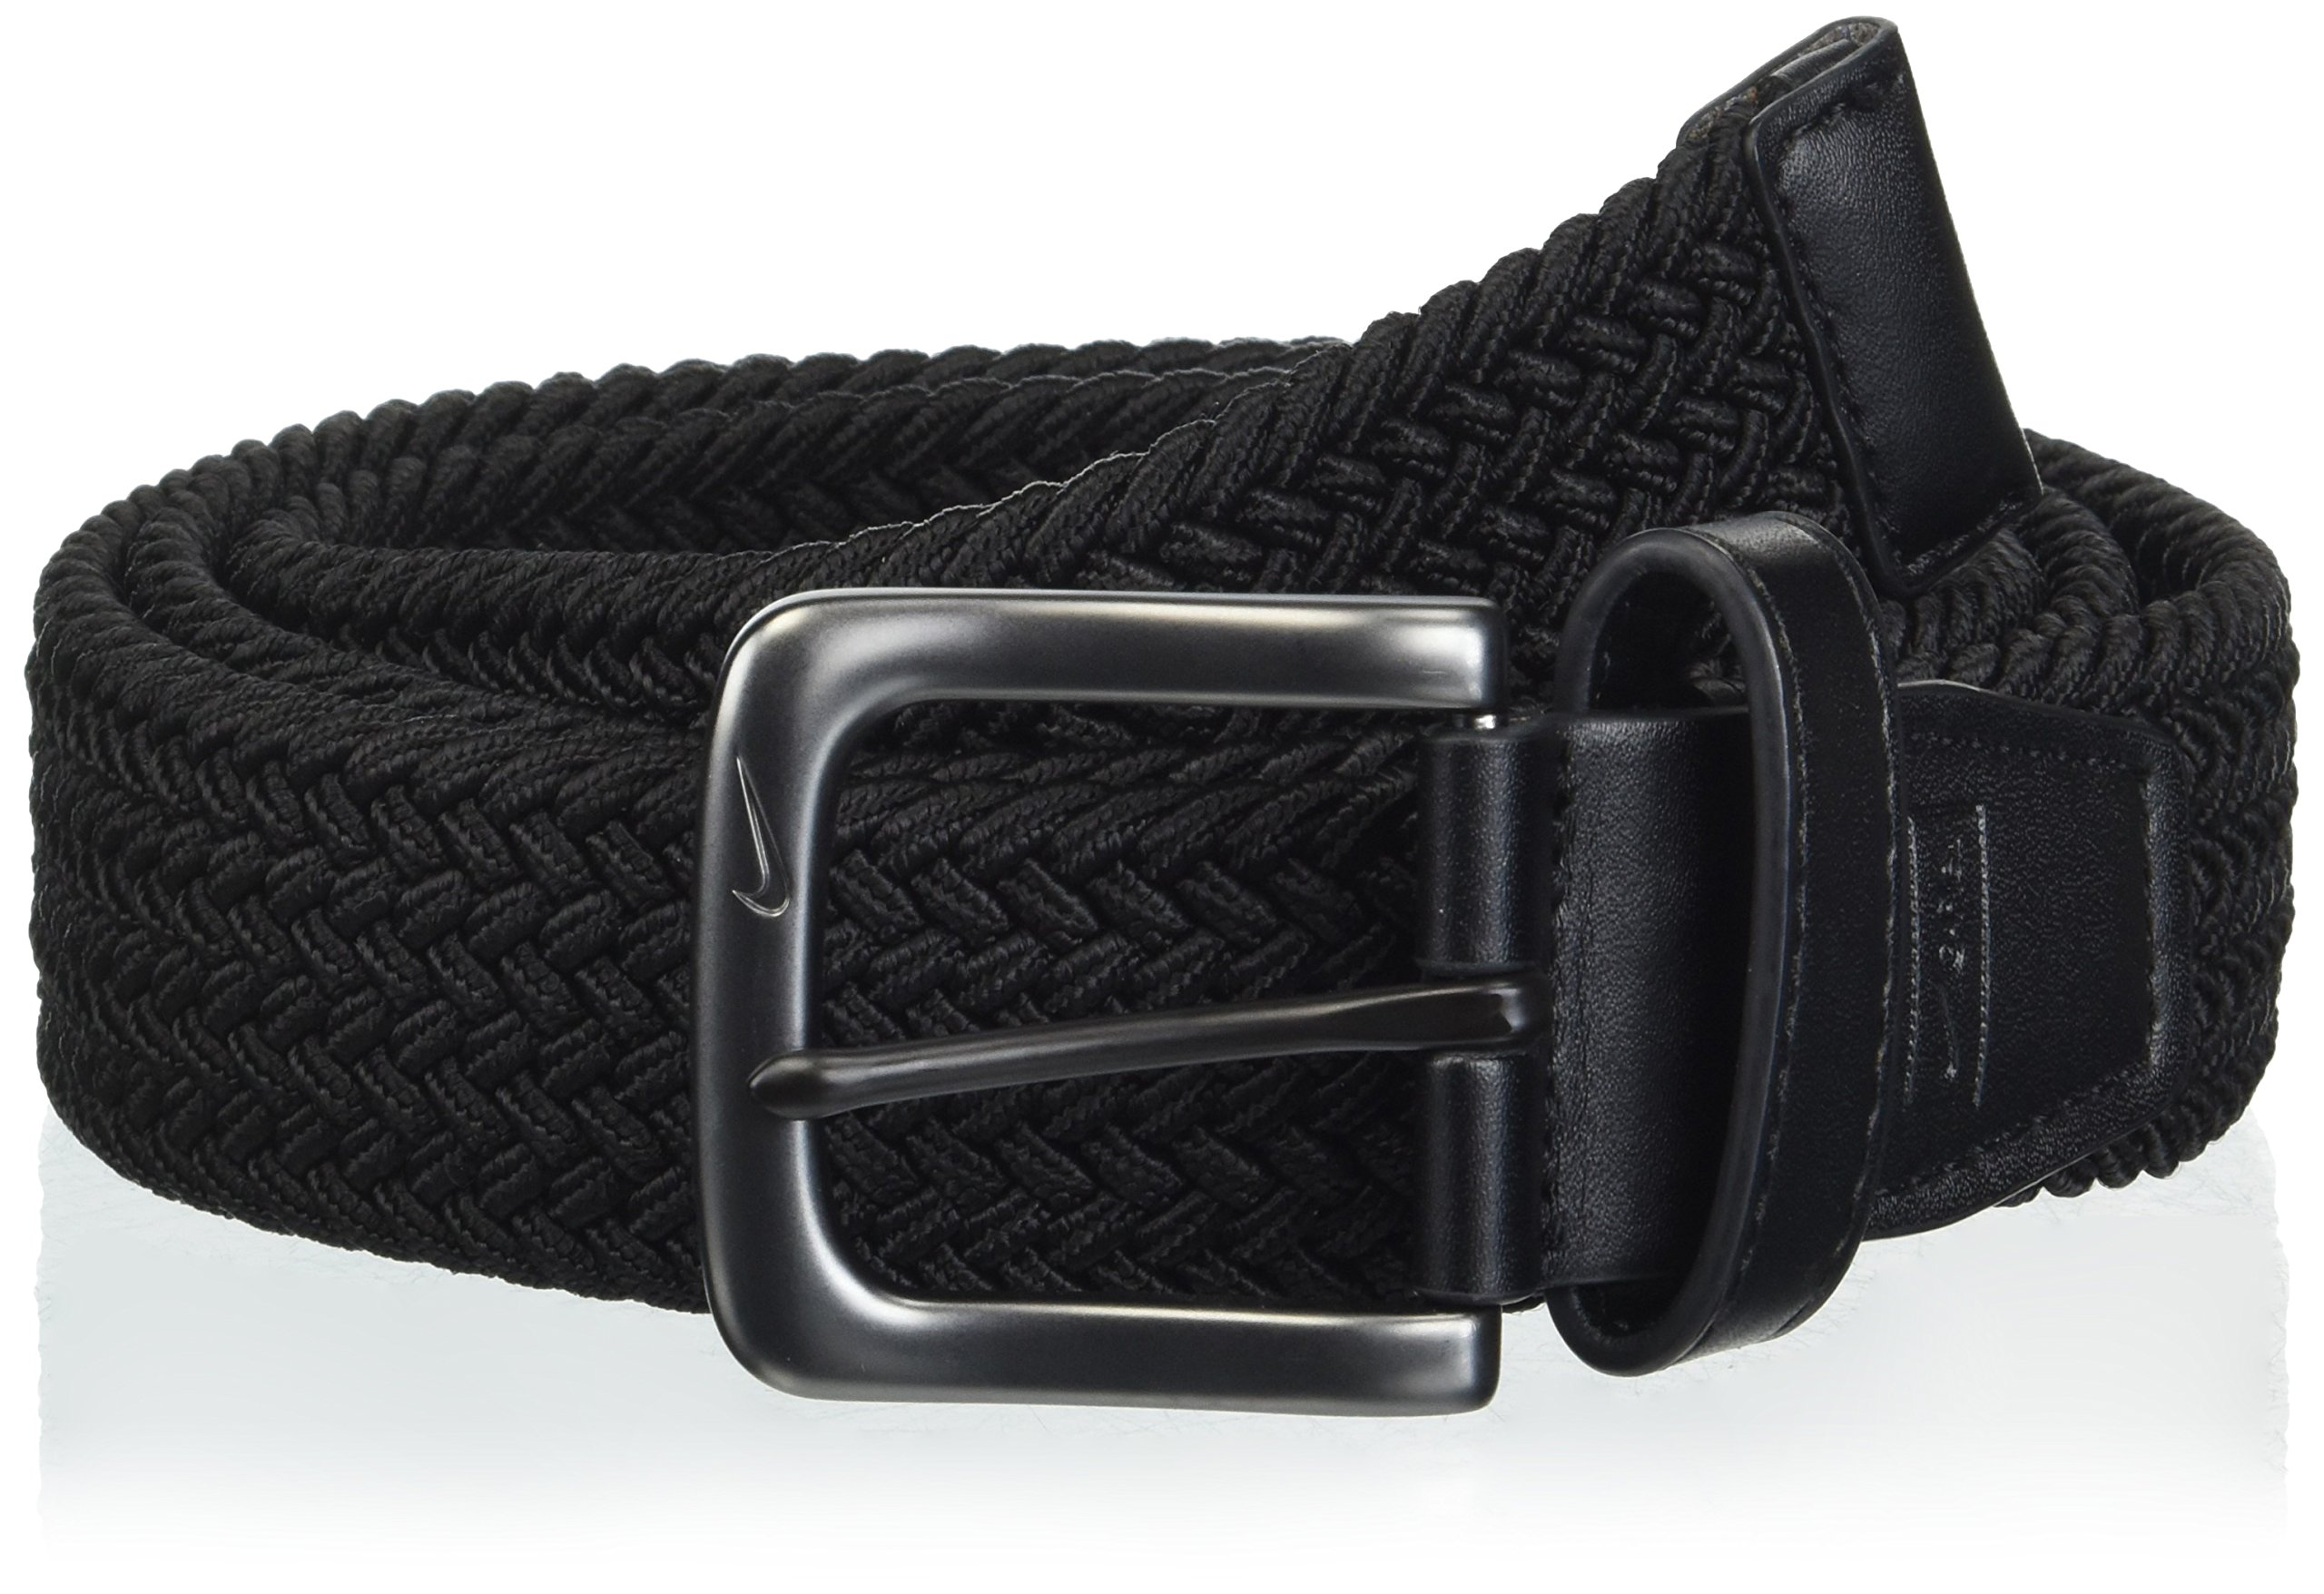 Nike Men's Stretch Woven Belt, black, XXL